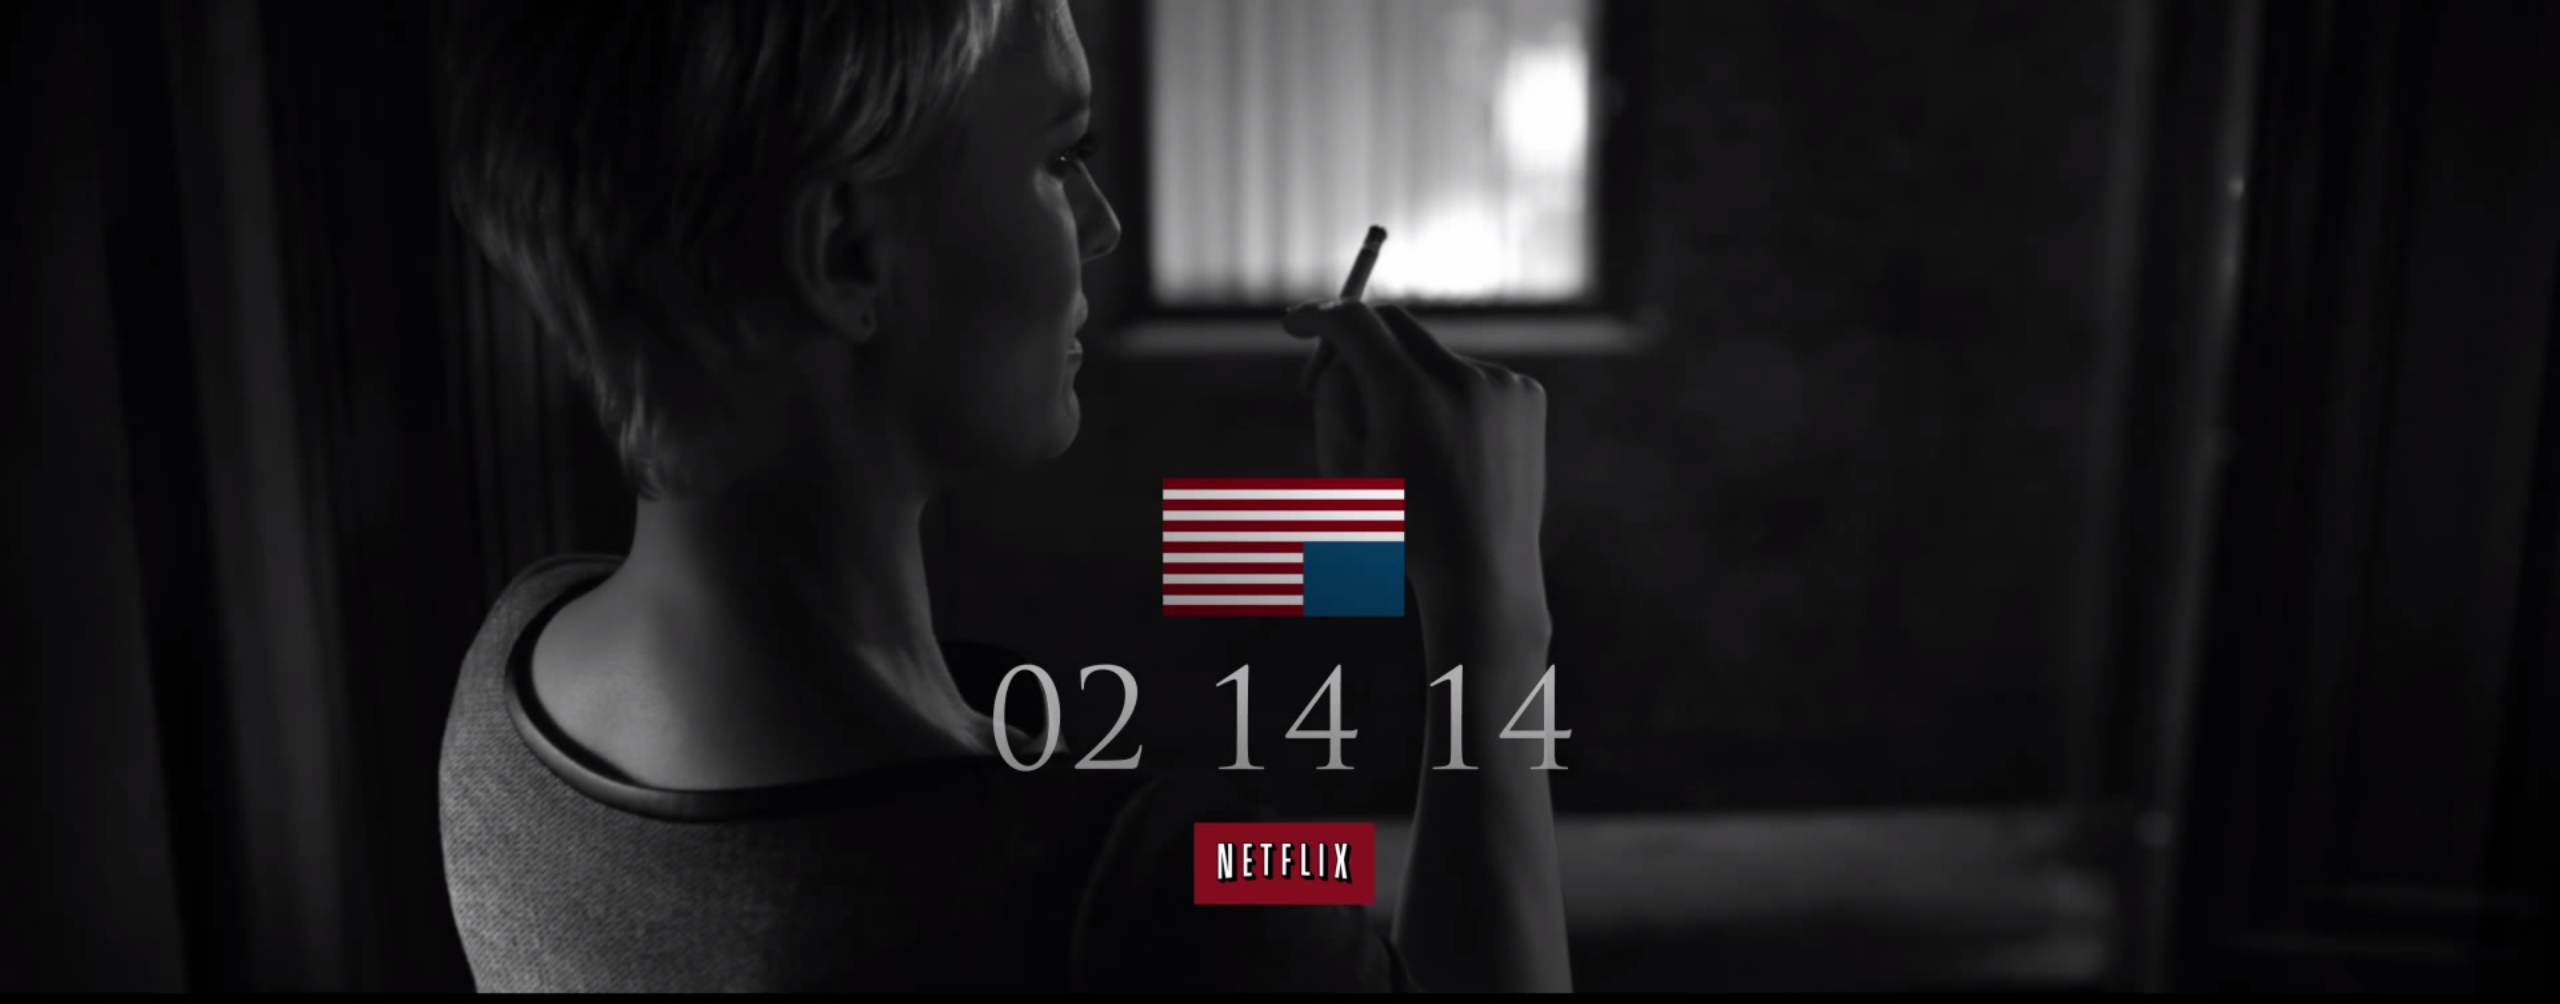 Netflix will release House of Cards season two on February 14 next year